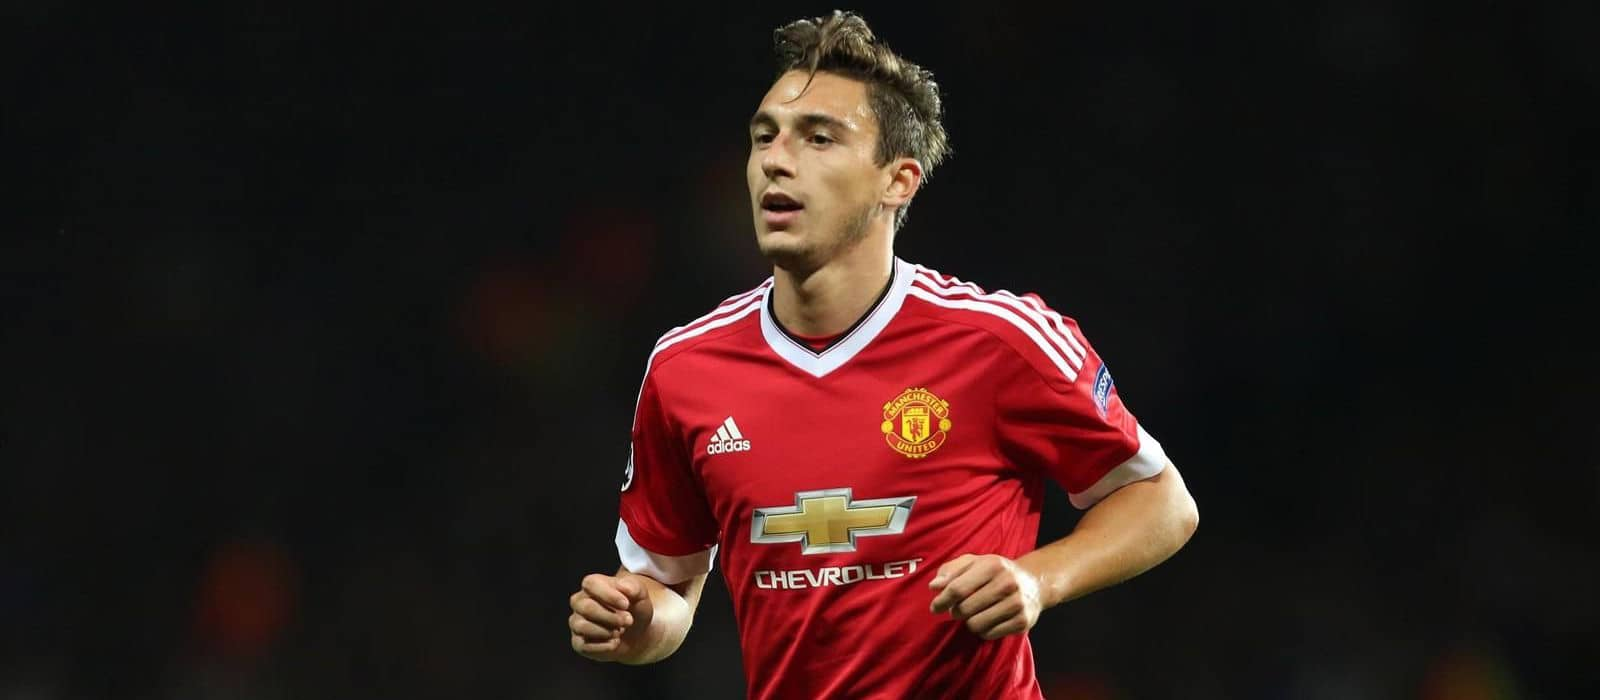 Matteo Darmian: Is the best yet to come for him at Manchester United?